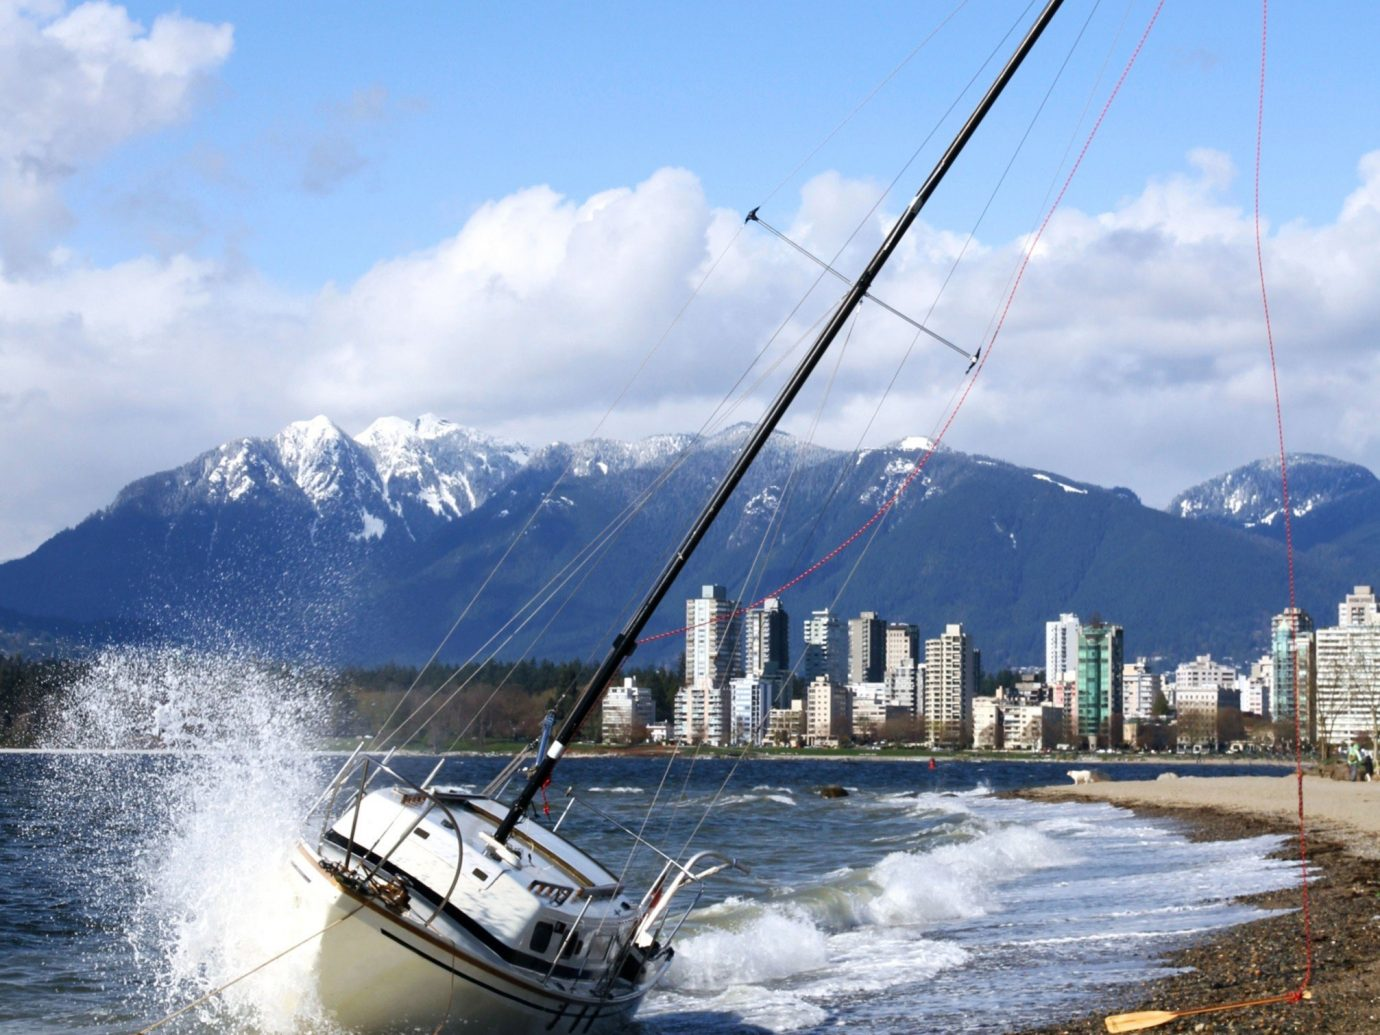 Offbeat outdoor sky water Boat vehicle Sea Coast sailboat sailing sail boating watercraft mast bay wind day